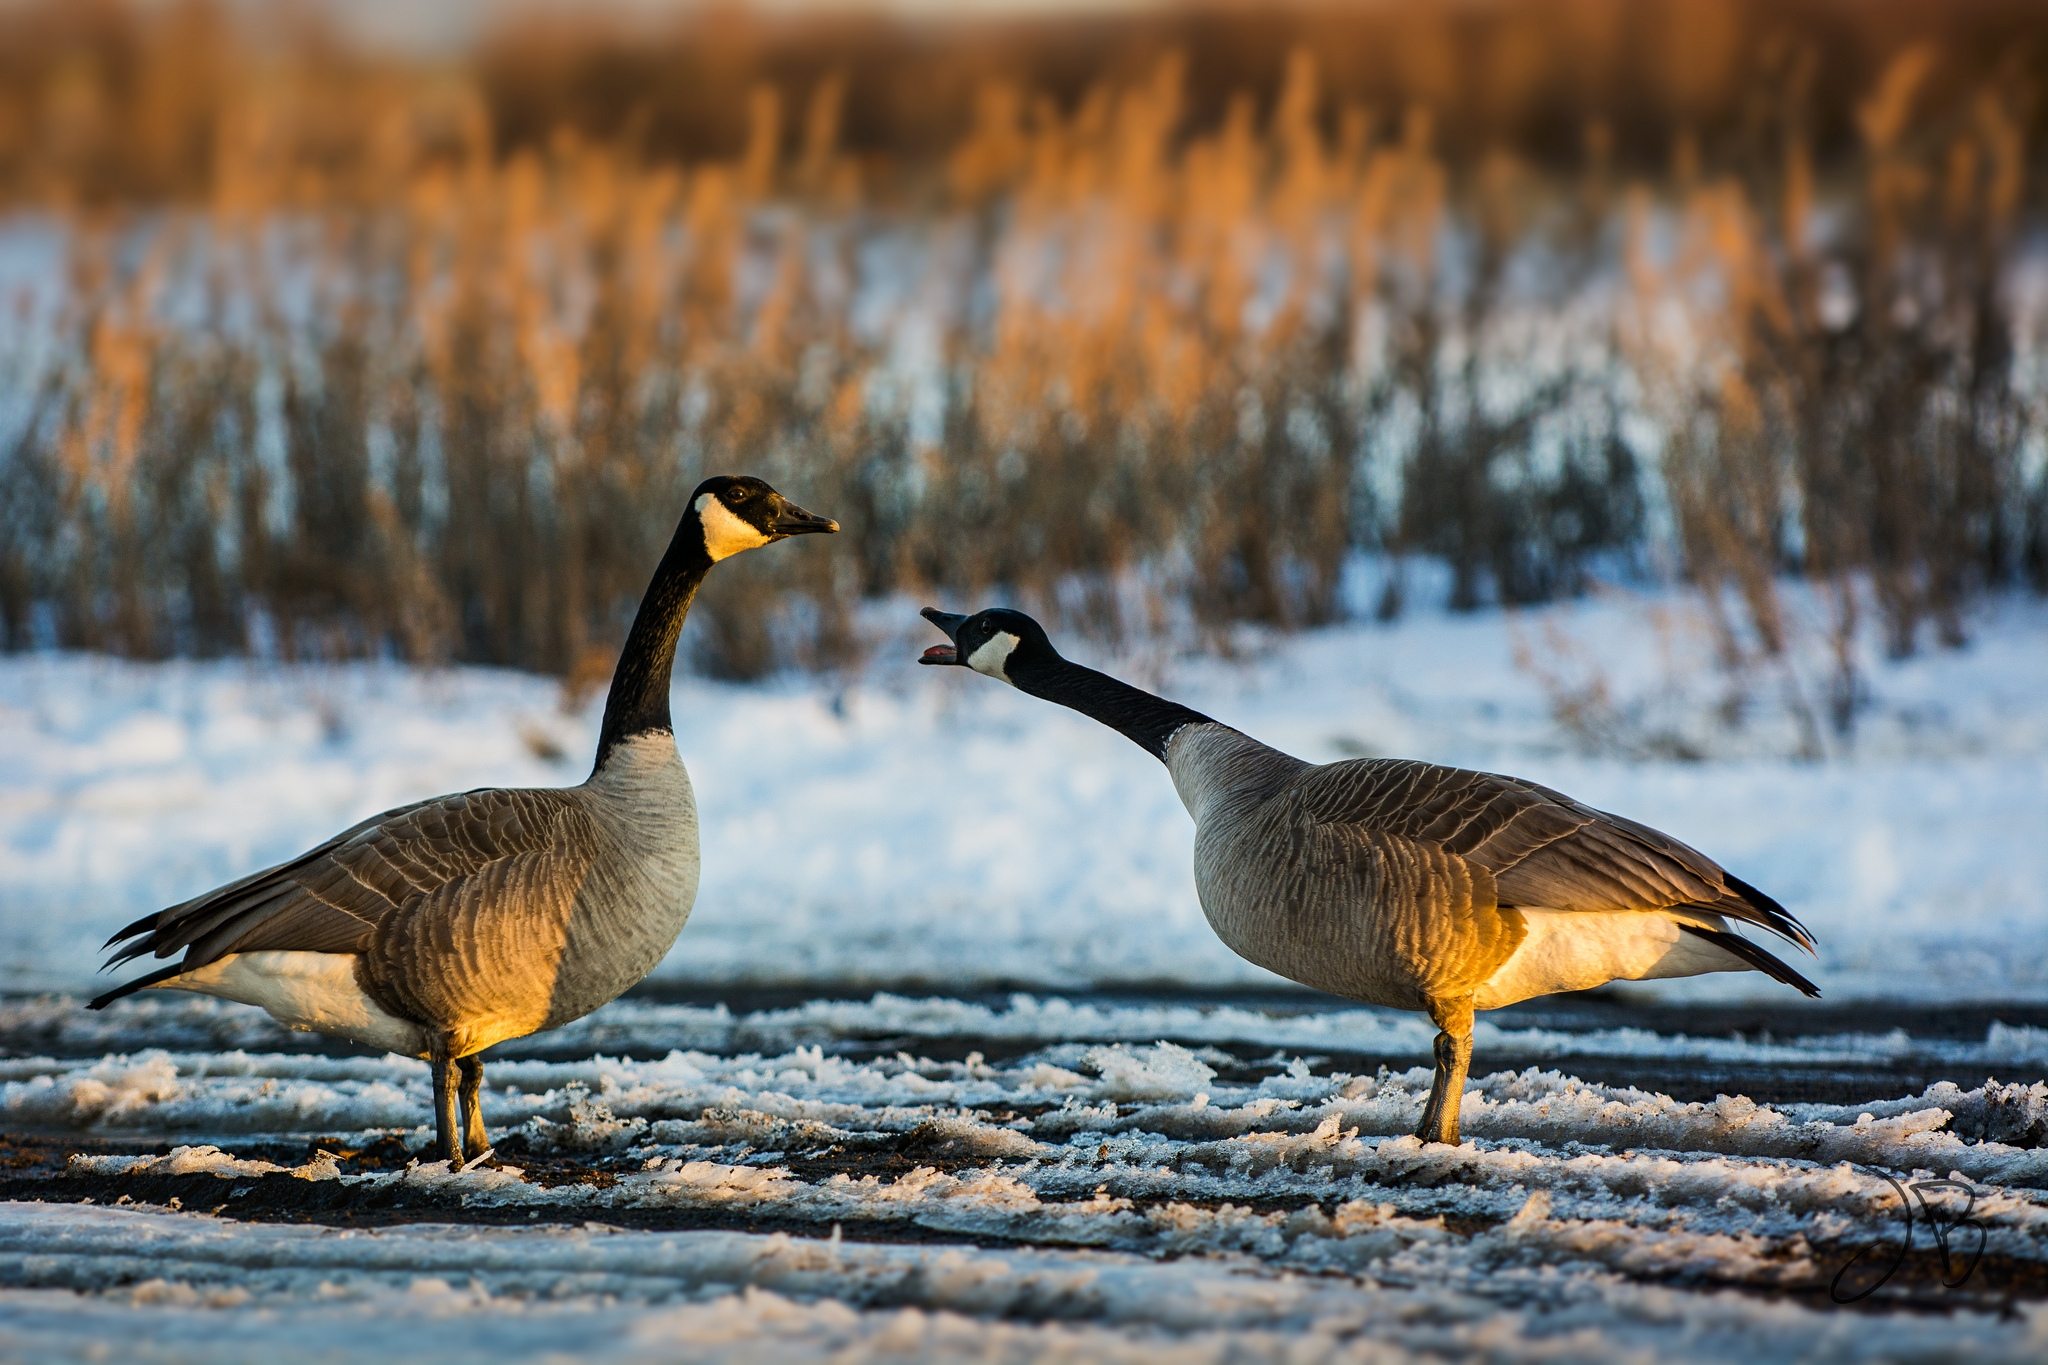 Two geese together